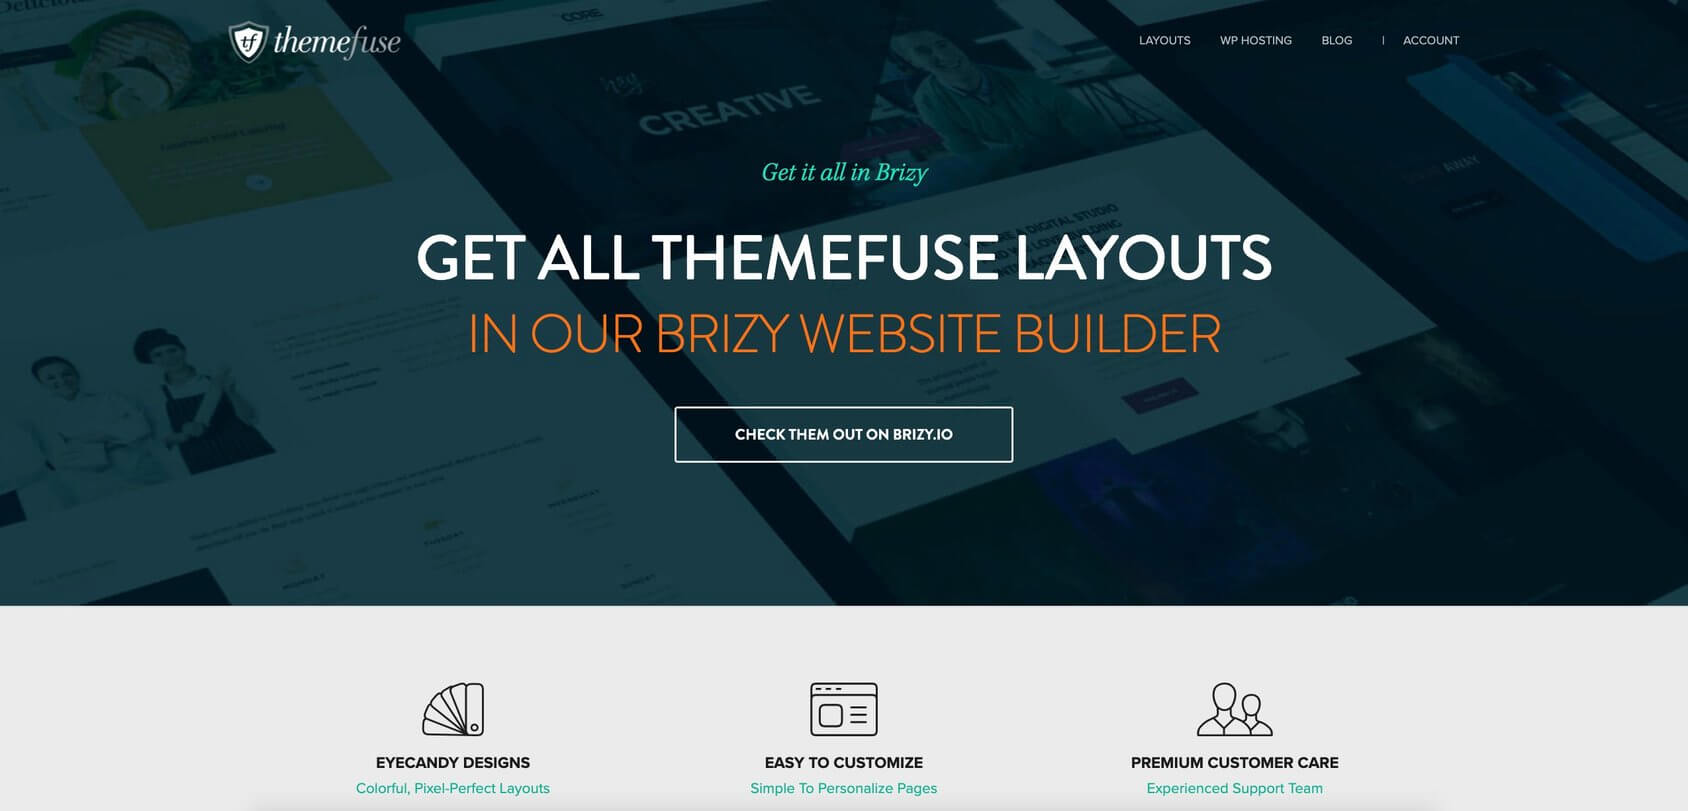 ThemeFuse homepage